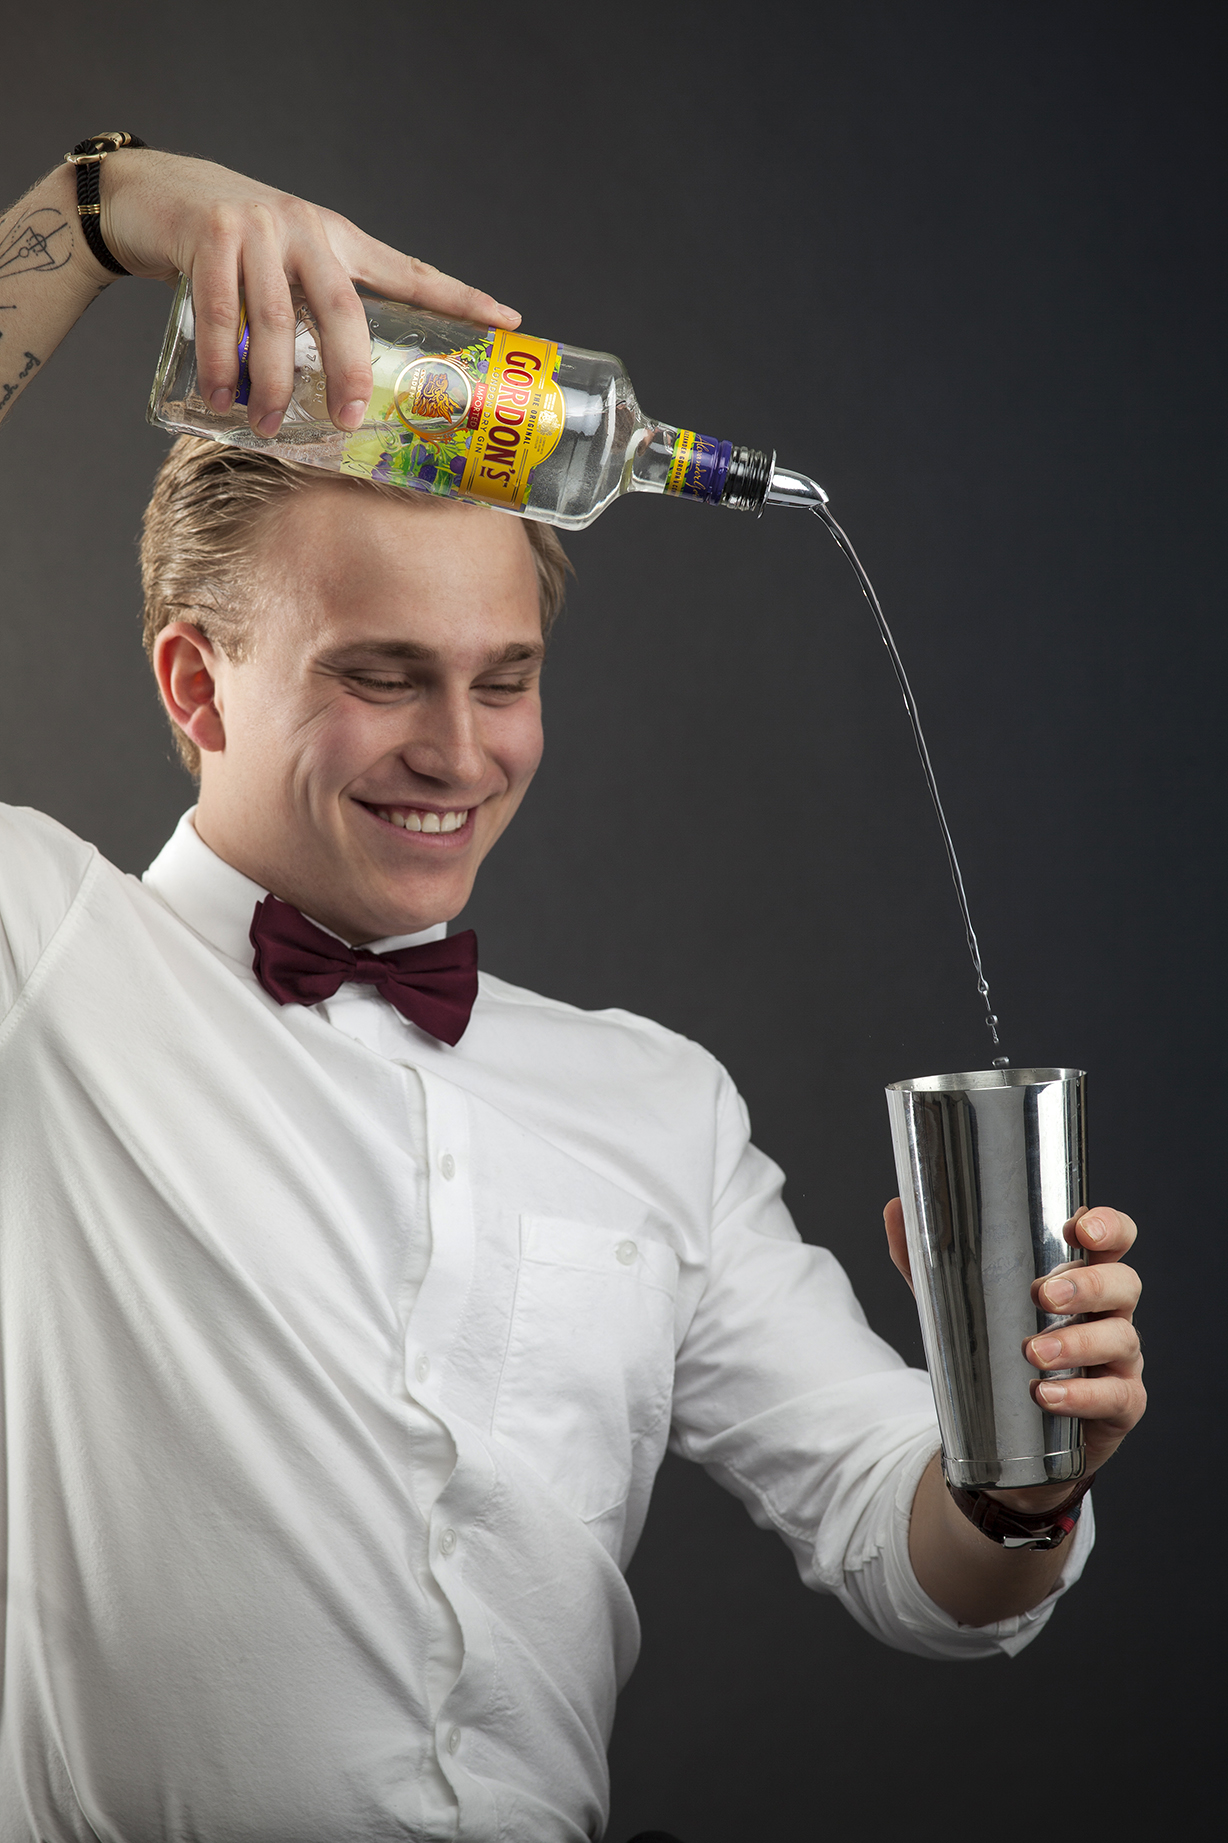 Chris pouring drink.jpg